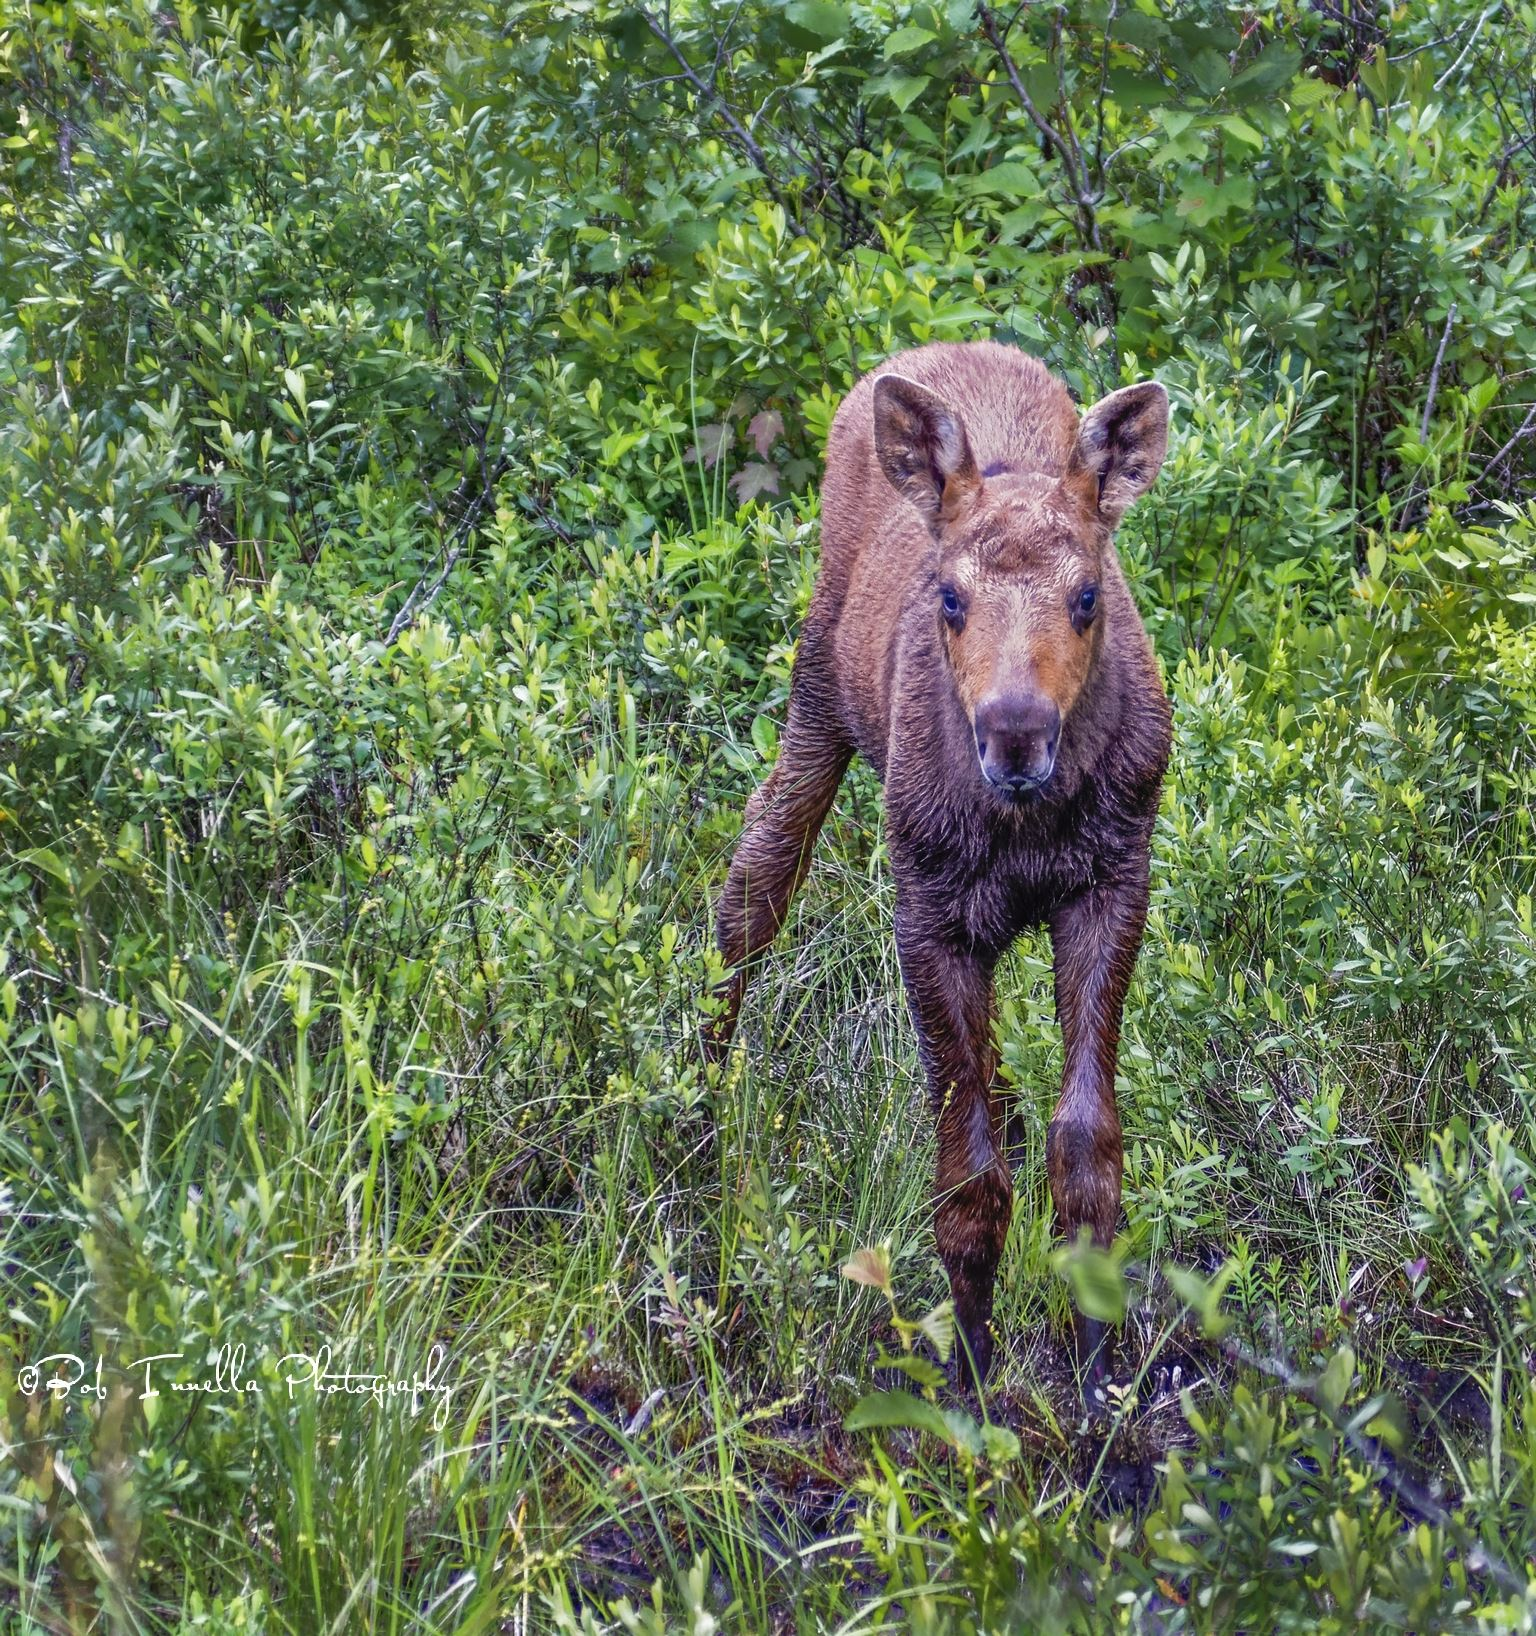 Baby Moosefb-_wm.jpg -  by Buckmaster